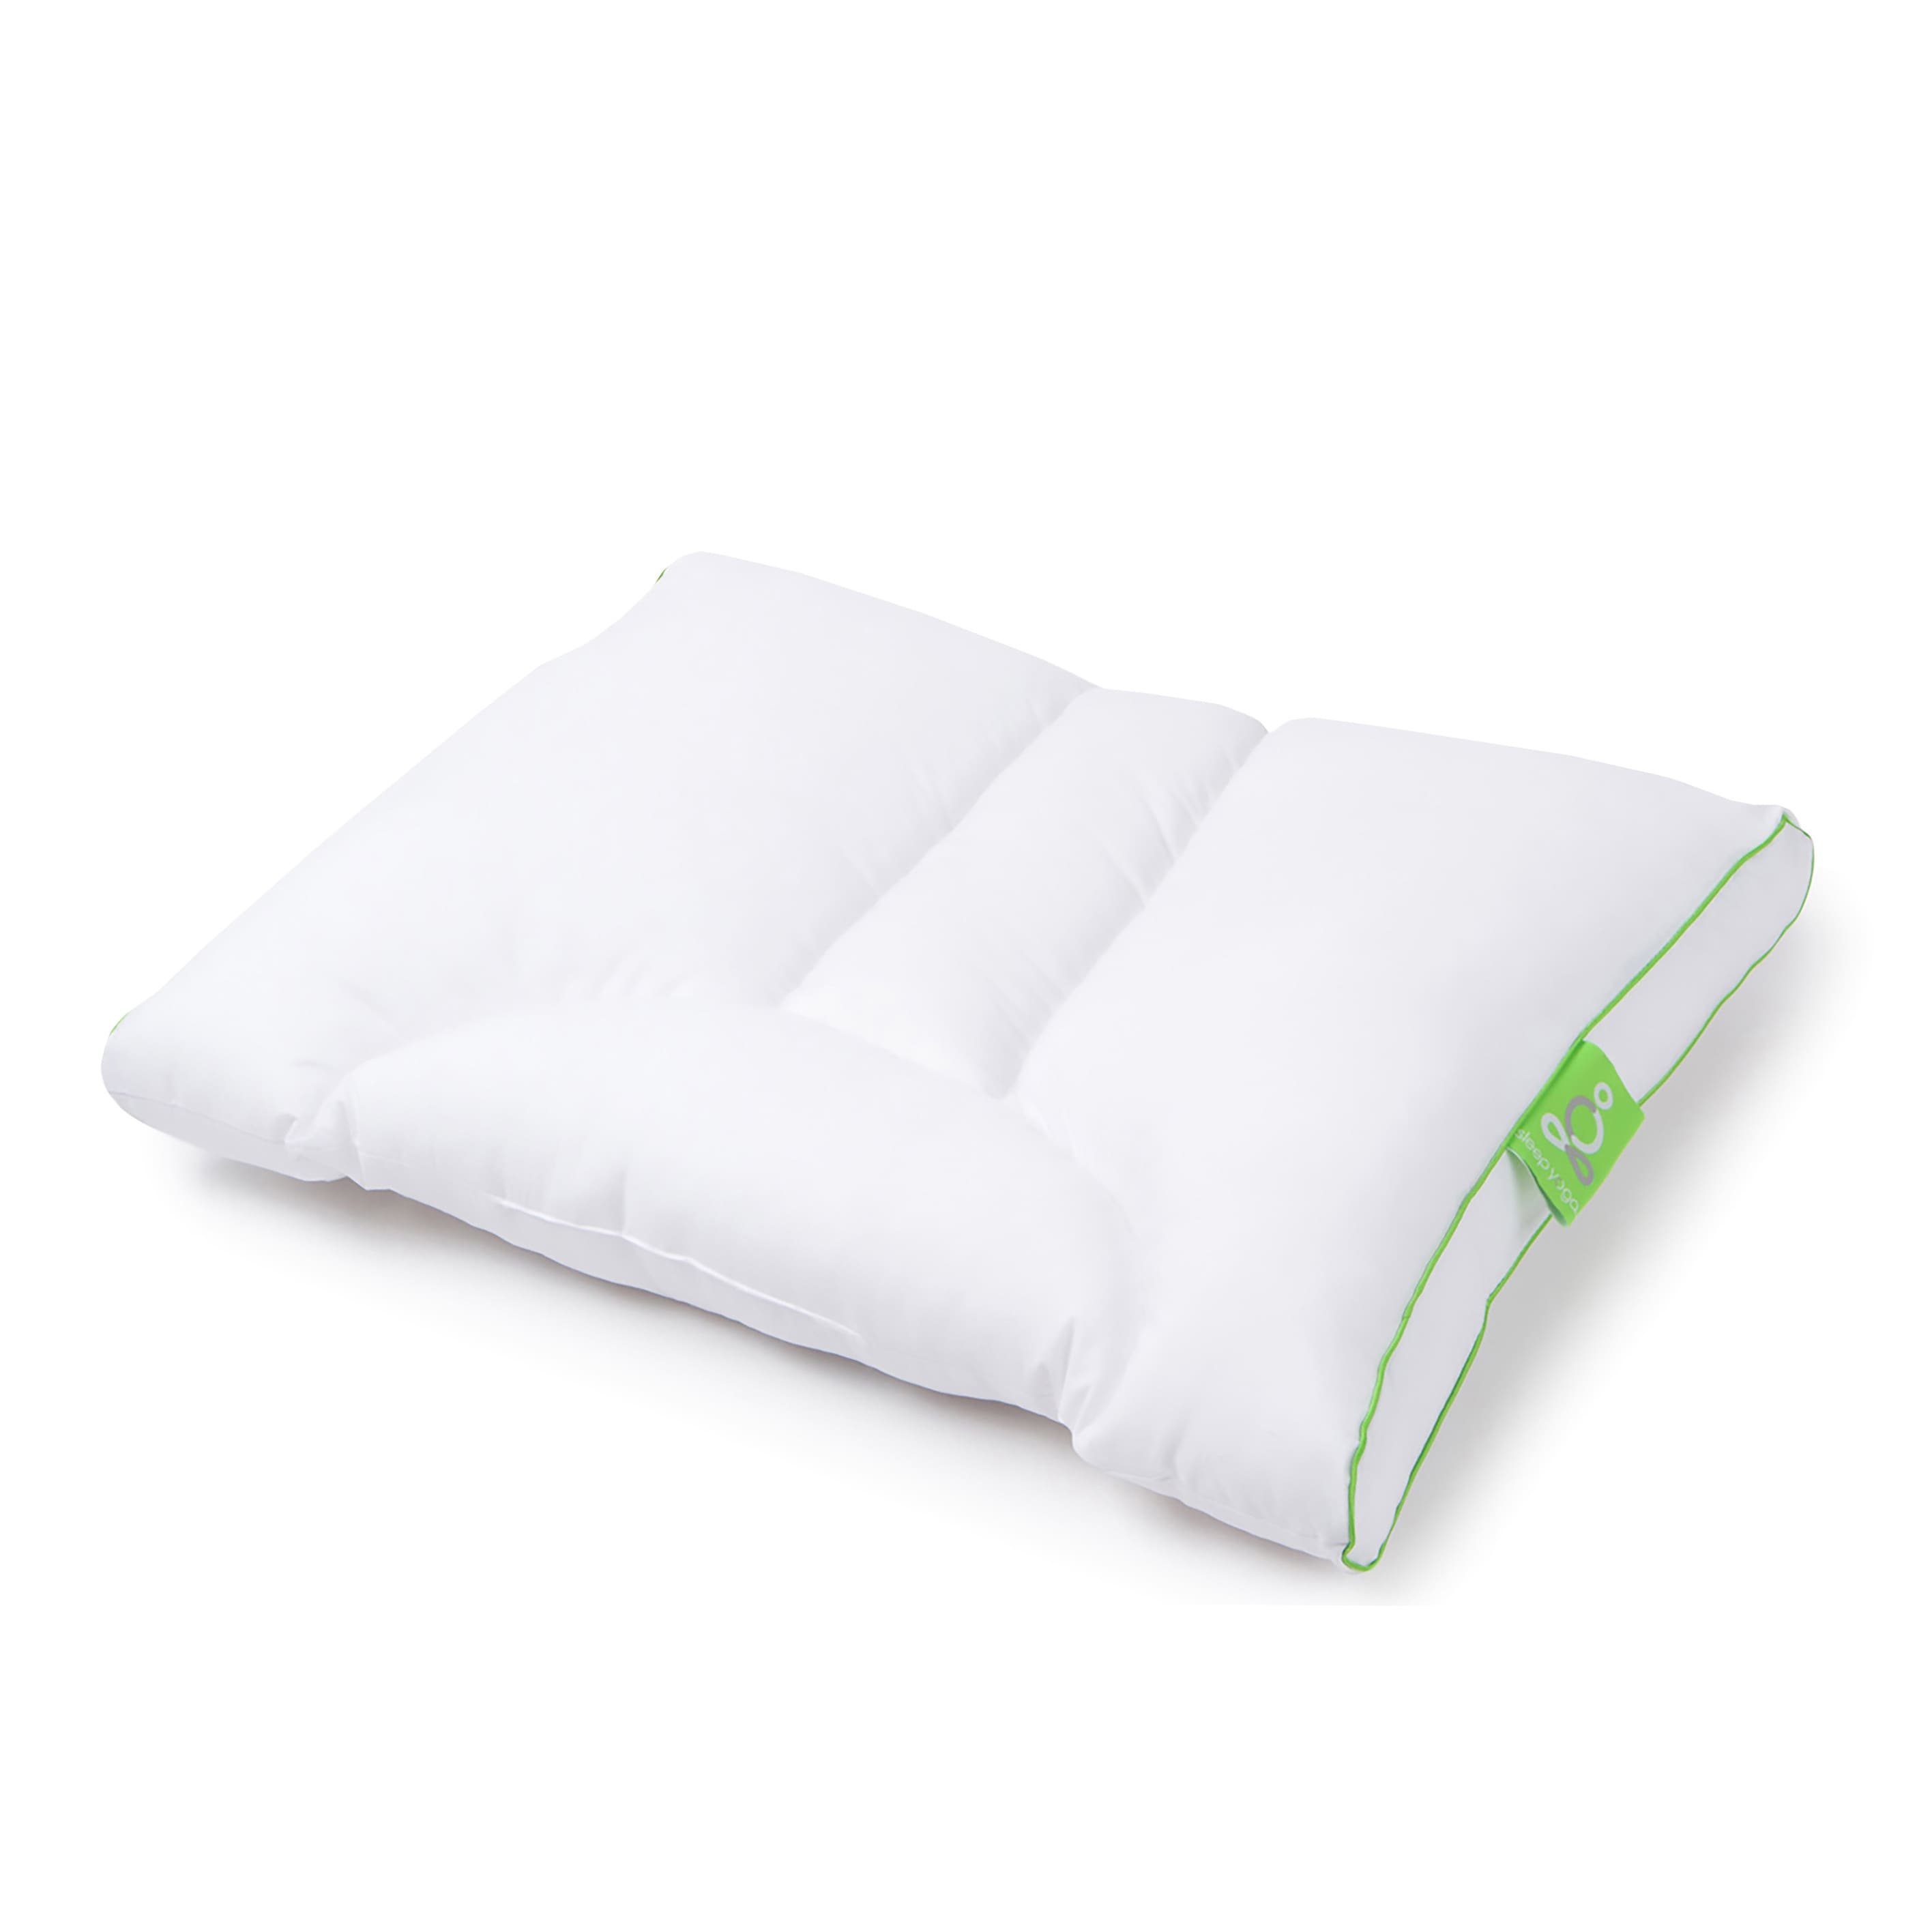 pillow down king side close filled sleeper size bar the